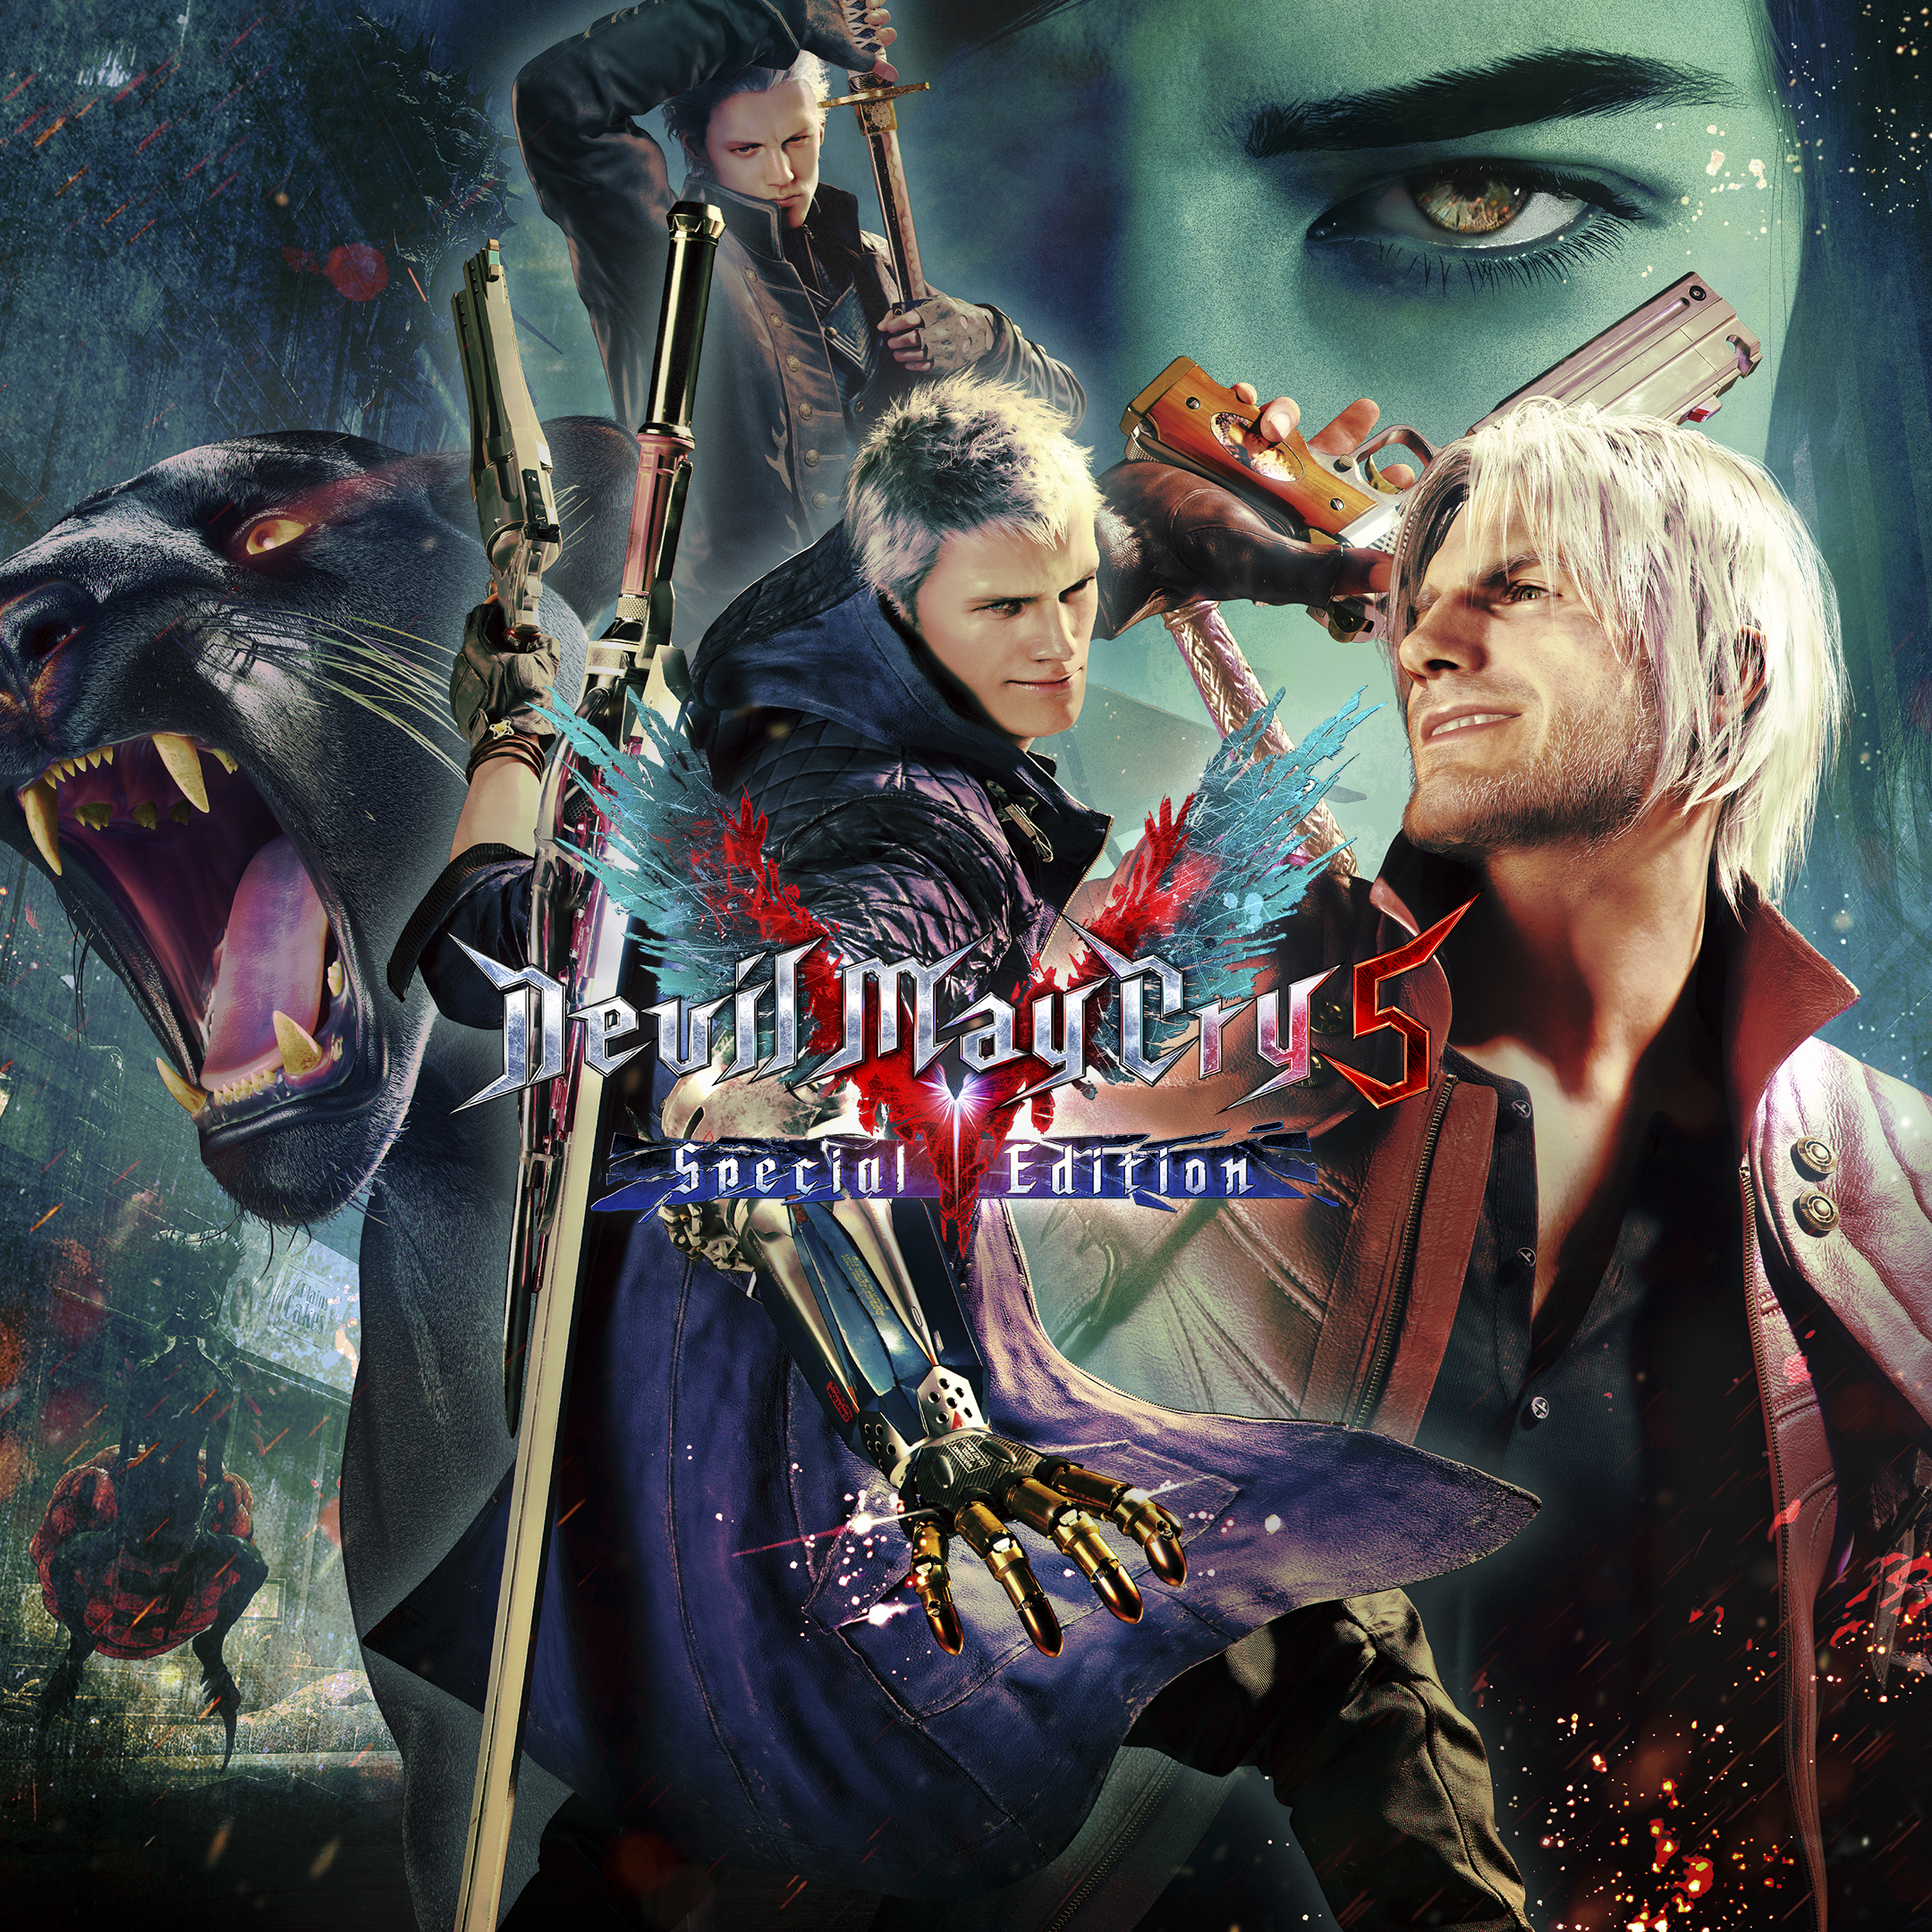 Devil May Cry 5: Special Edition - Arte de tienda